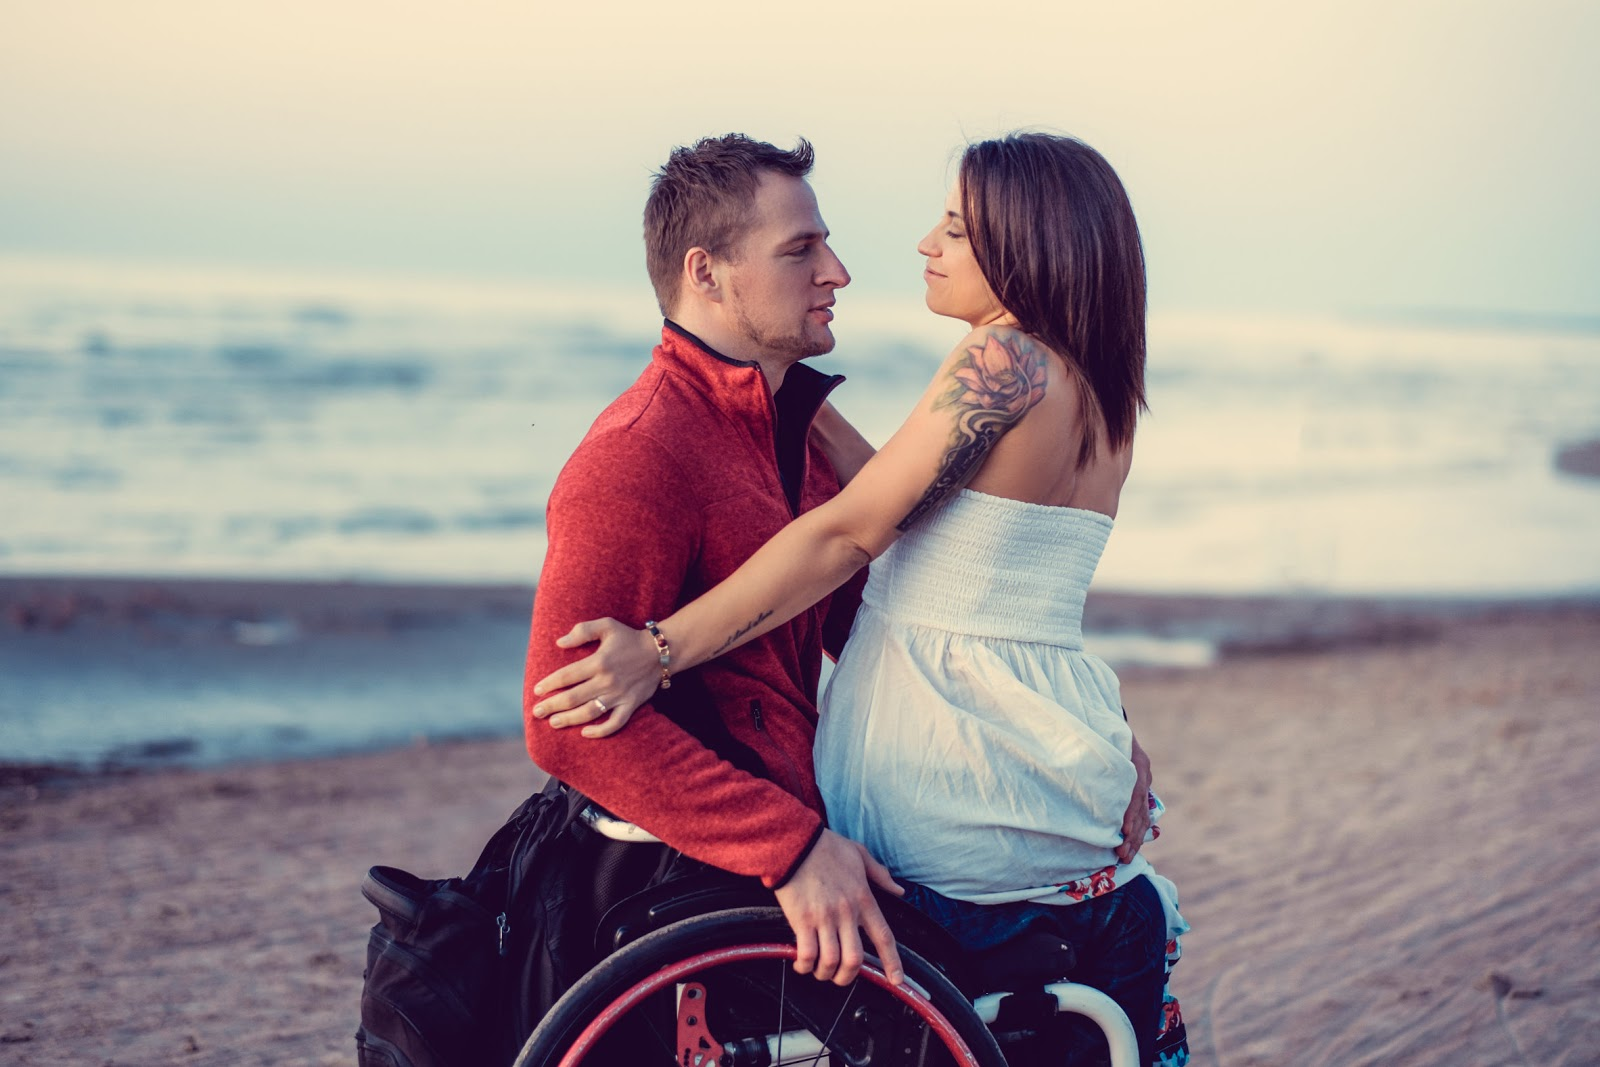 Factors That Play A Great Role in Choosing the Right Disabled Dating Agency